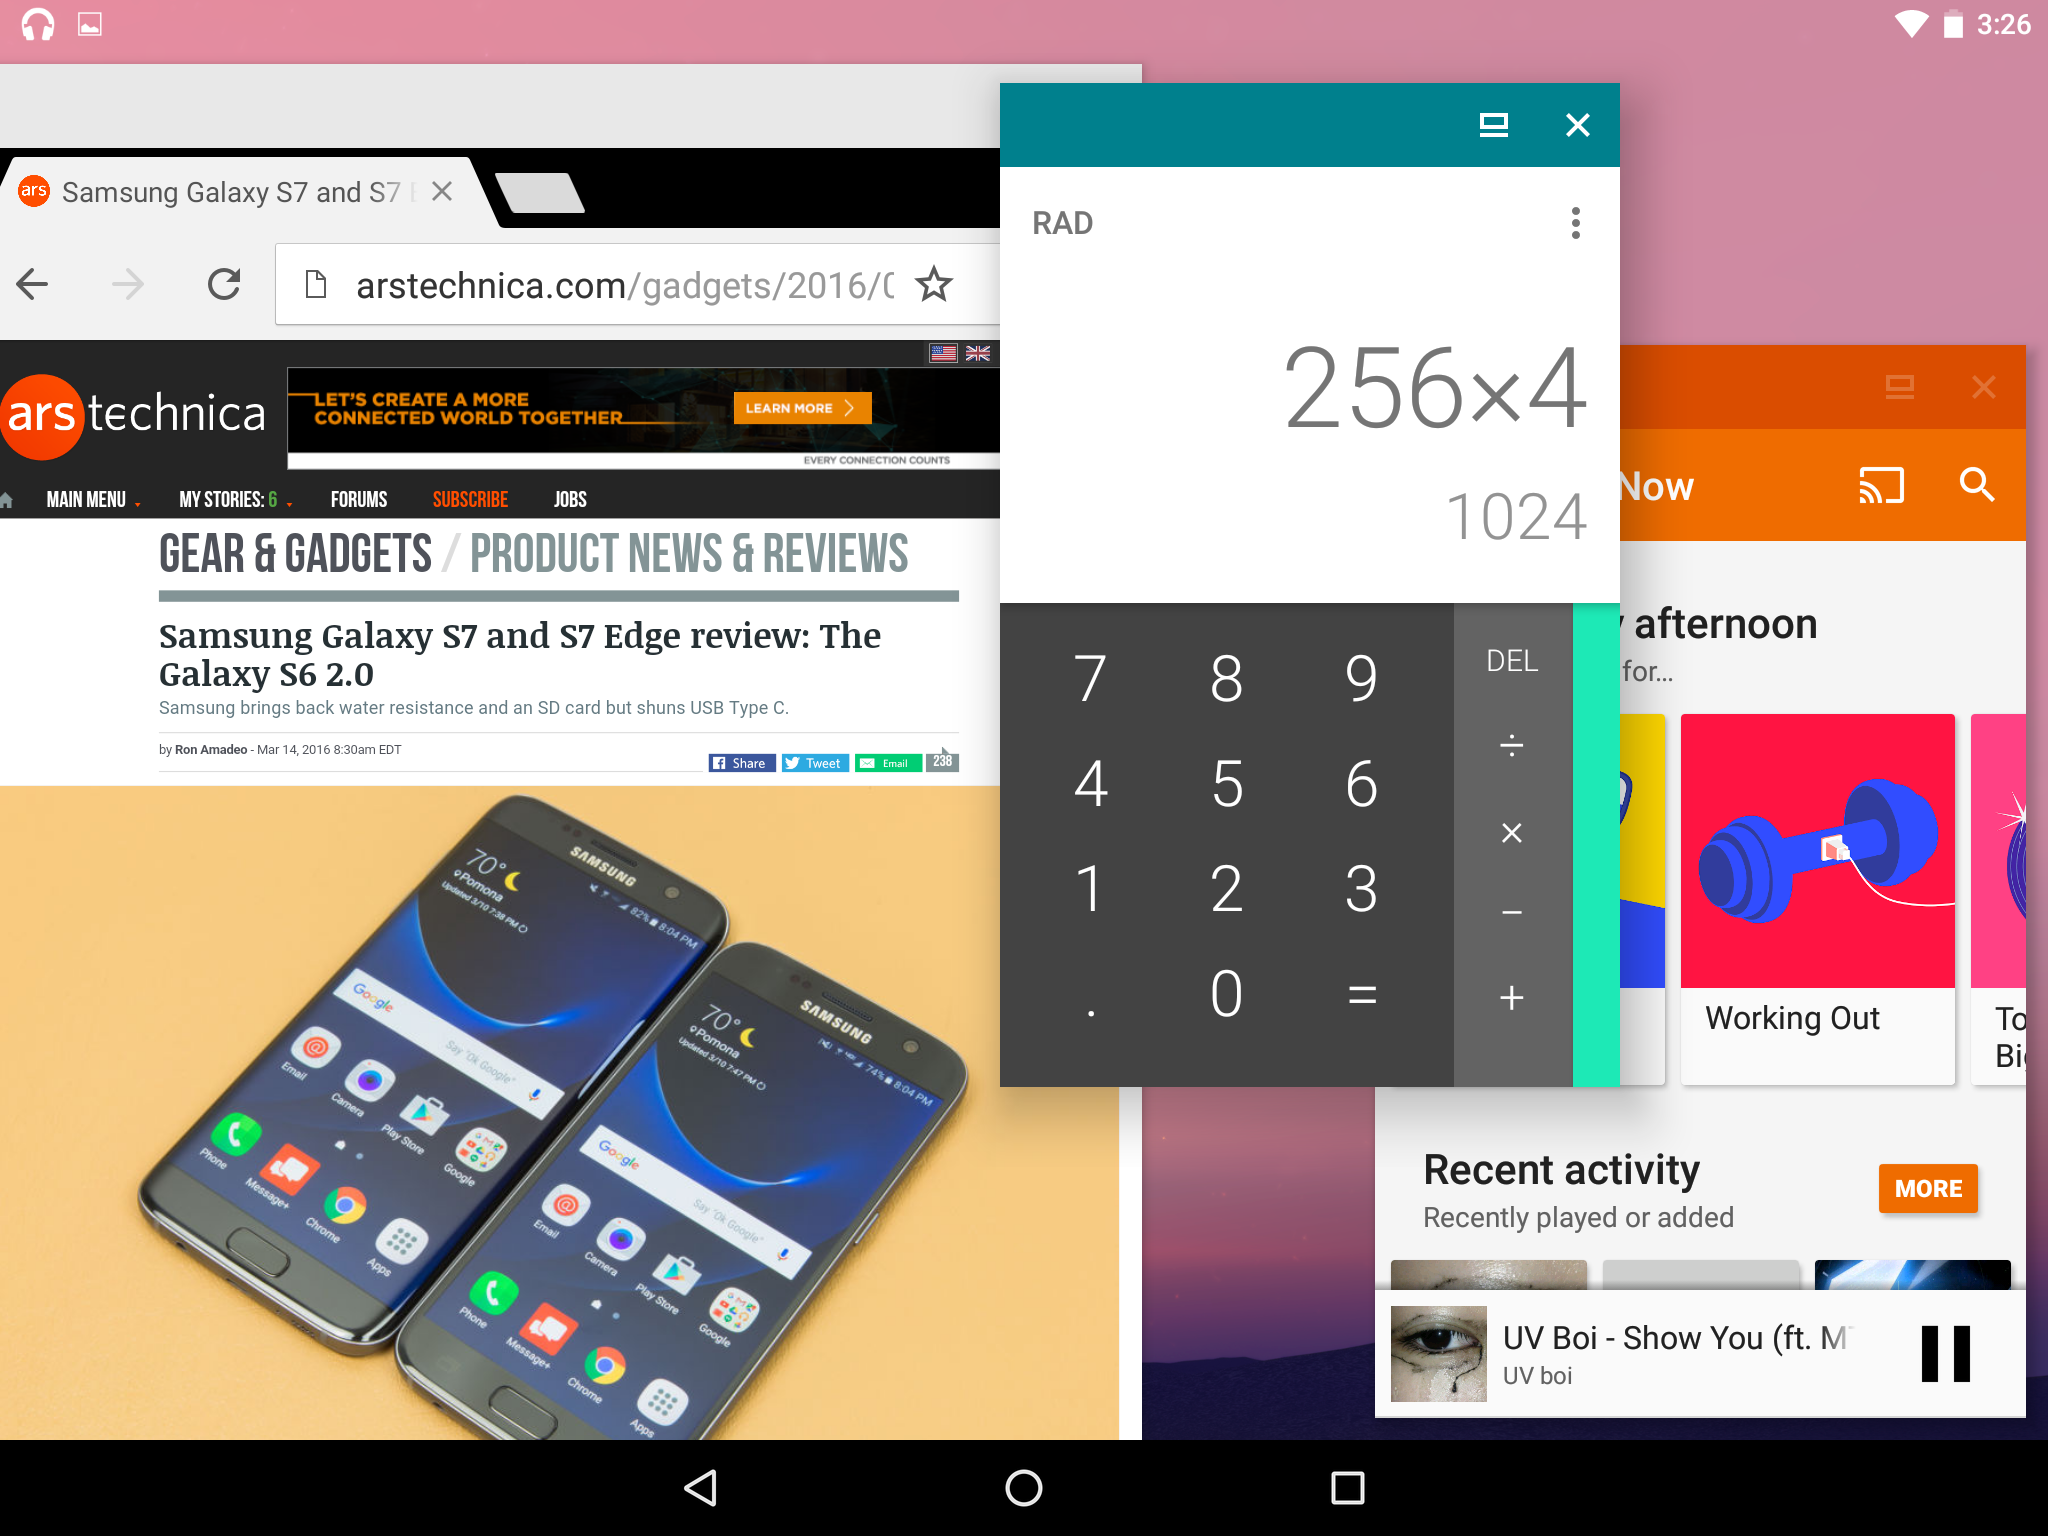 Android N Developer Preview 2 running the hidden freeform window mode.